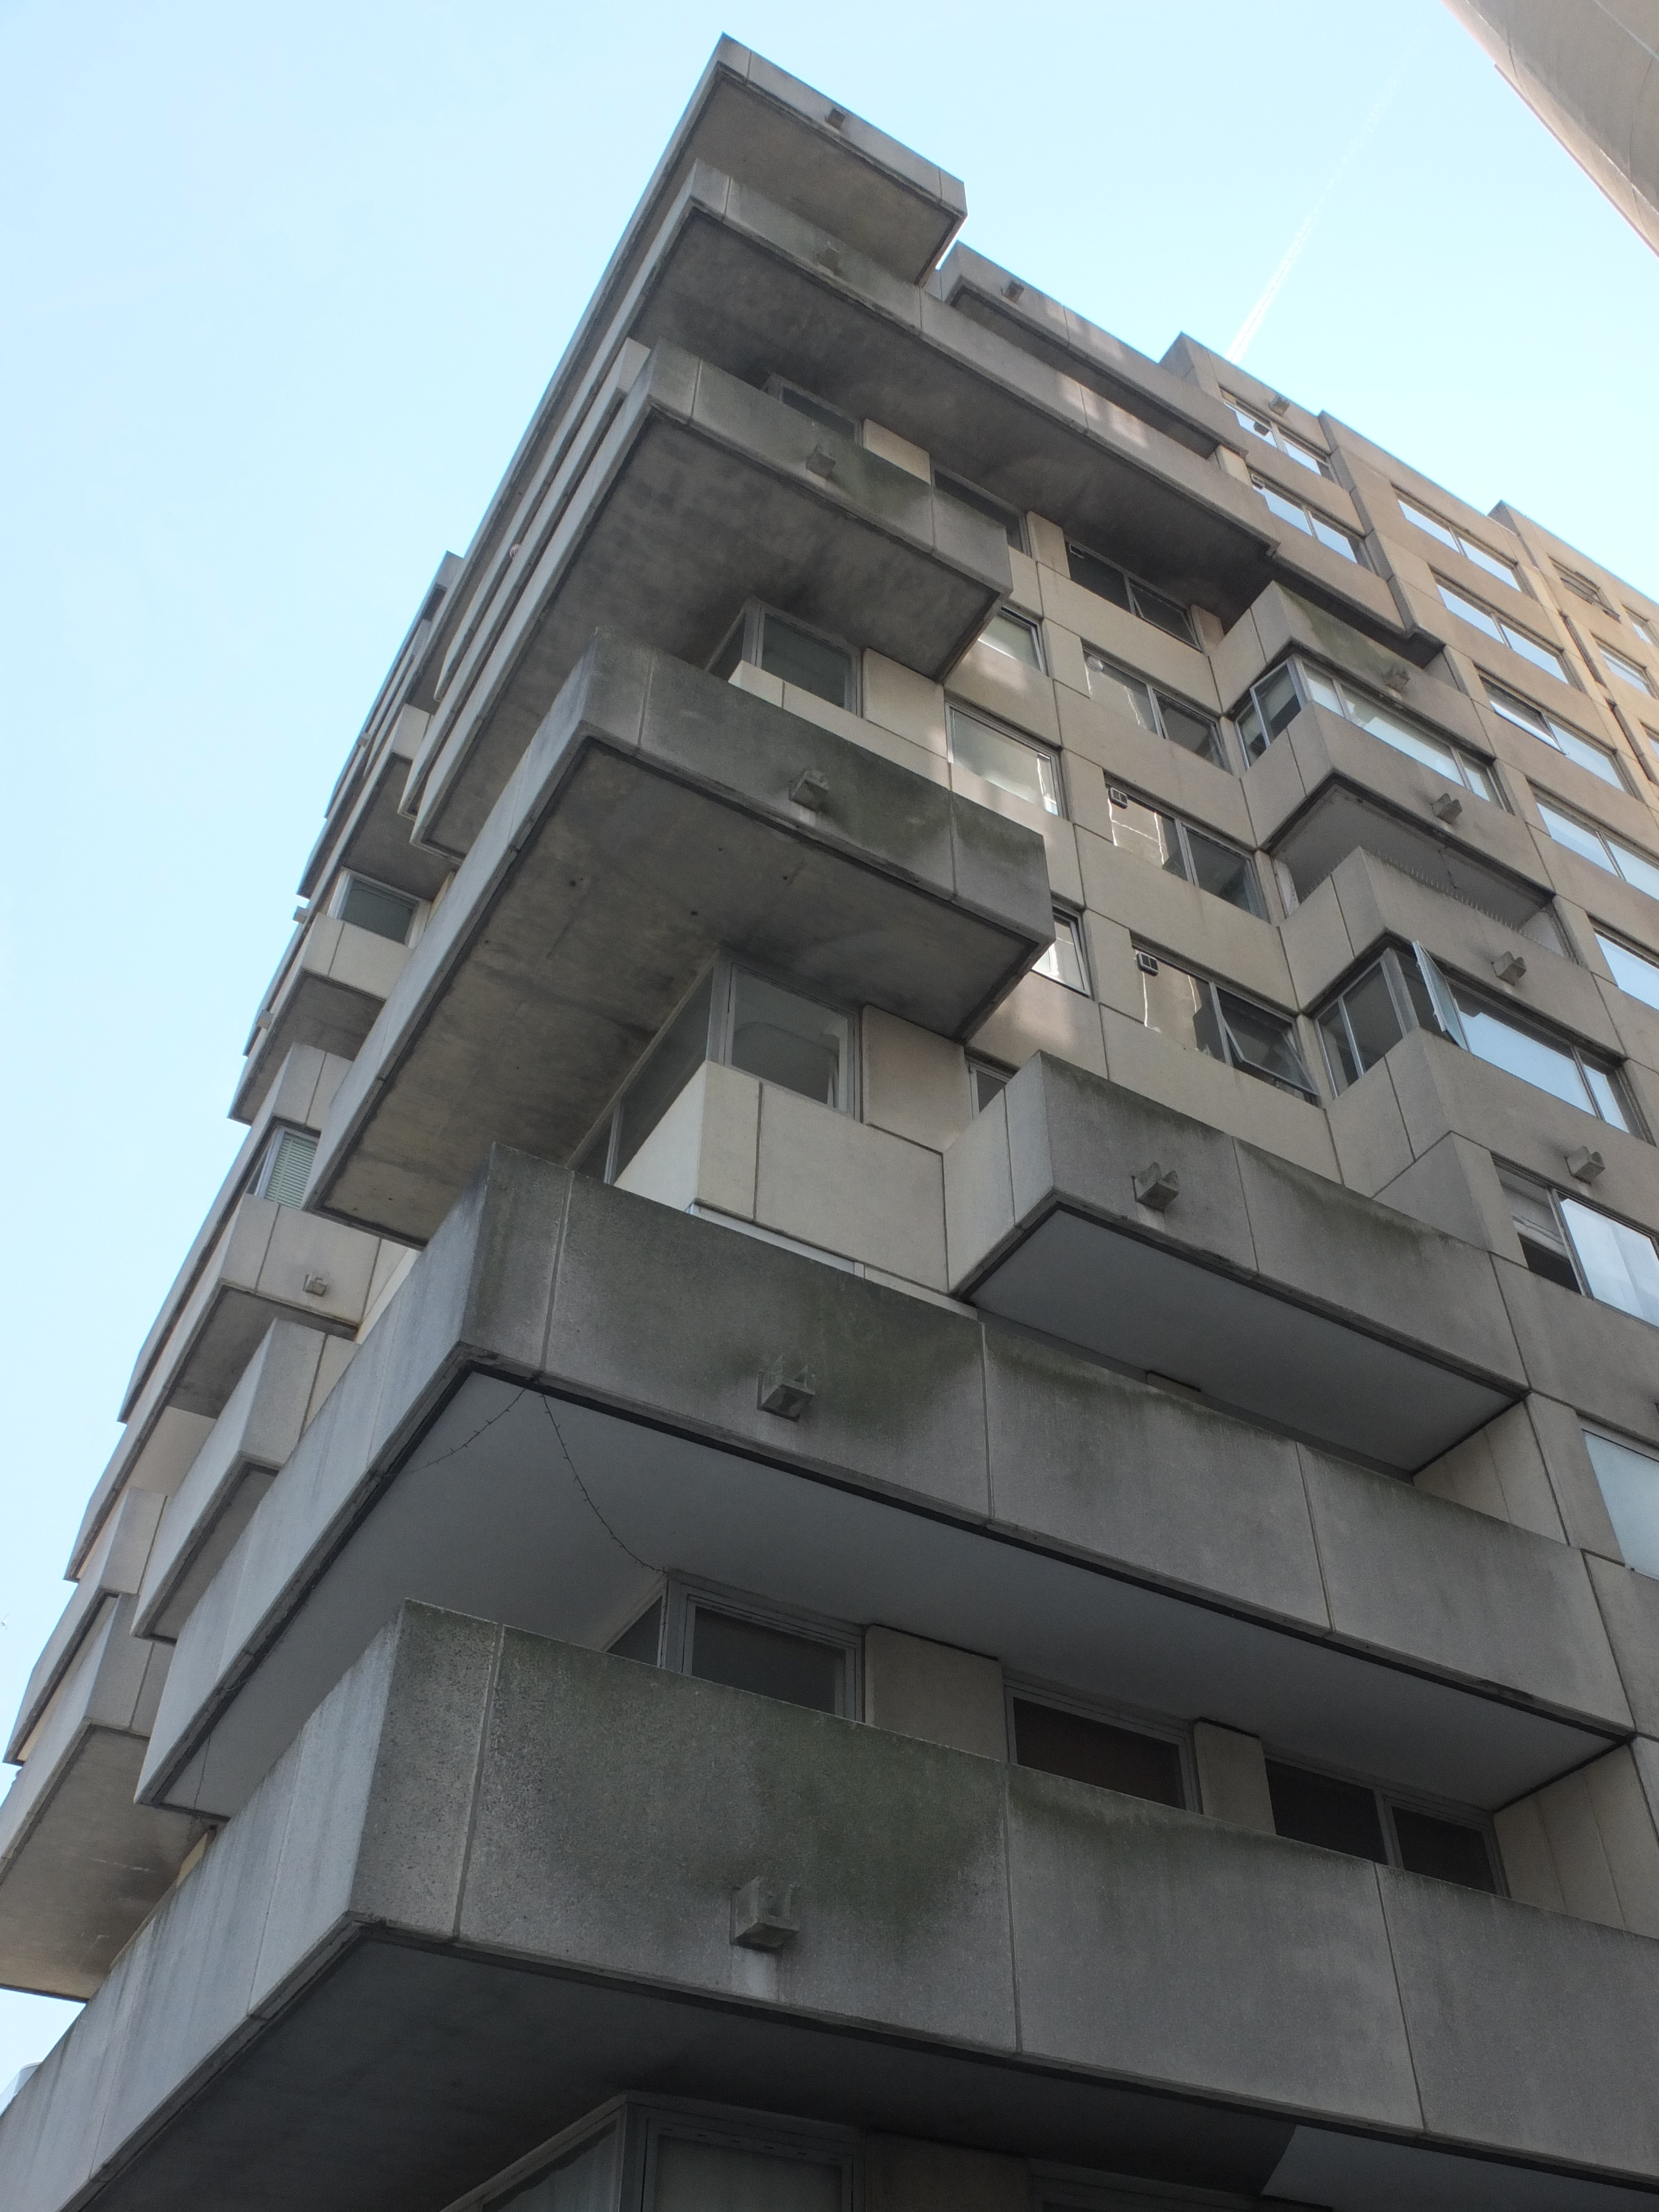 Brutalist architecture southbank in summer ellienorthway for Local residential architects near me